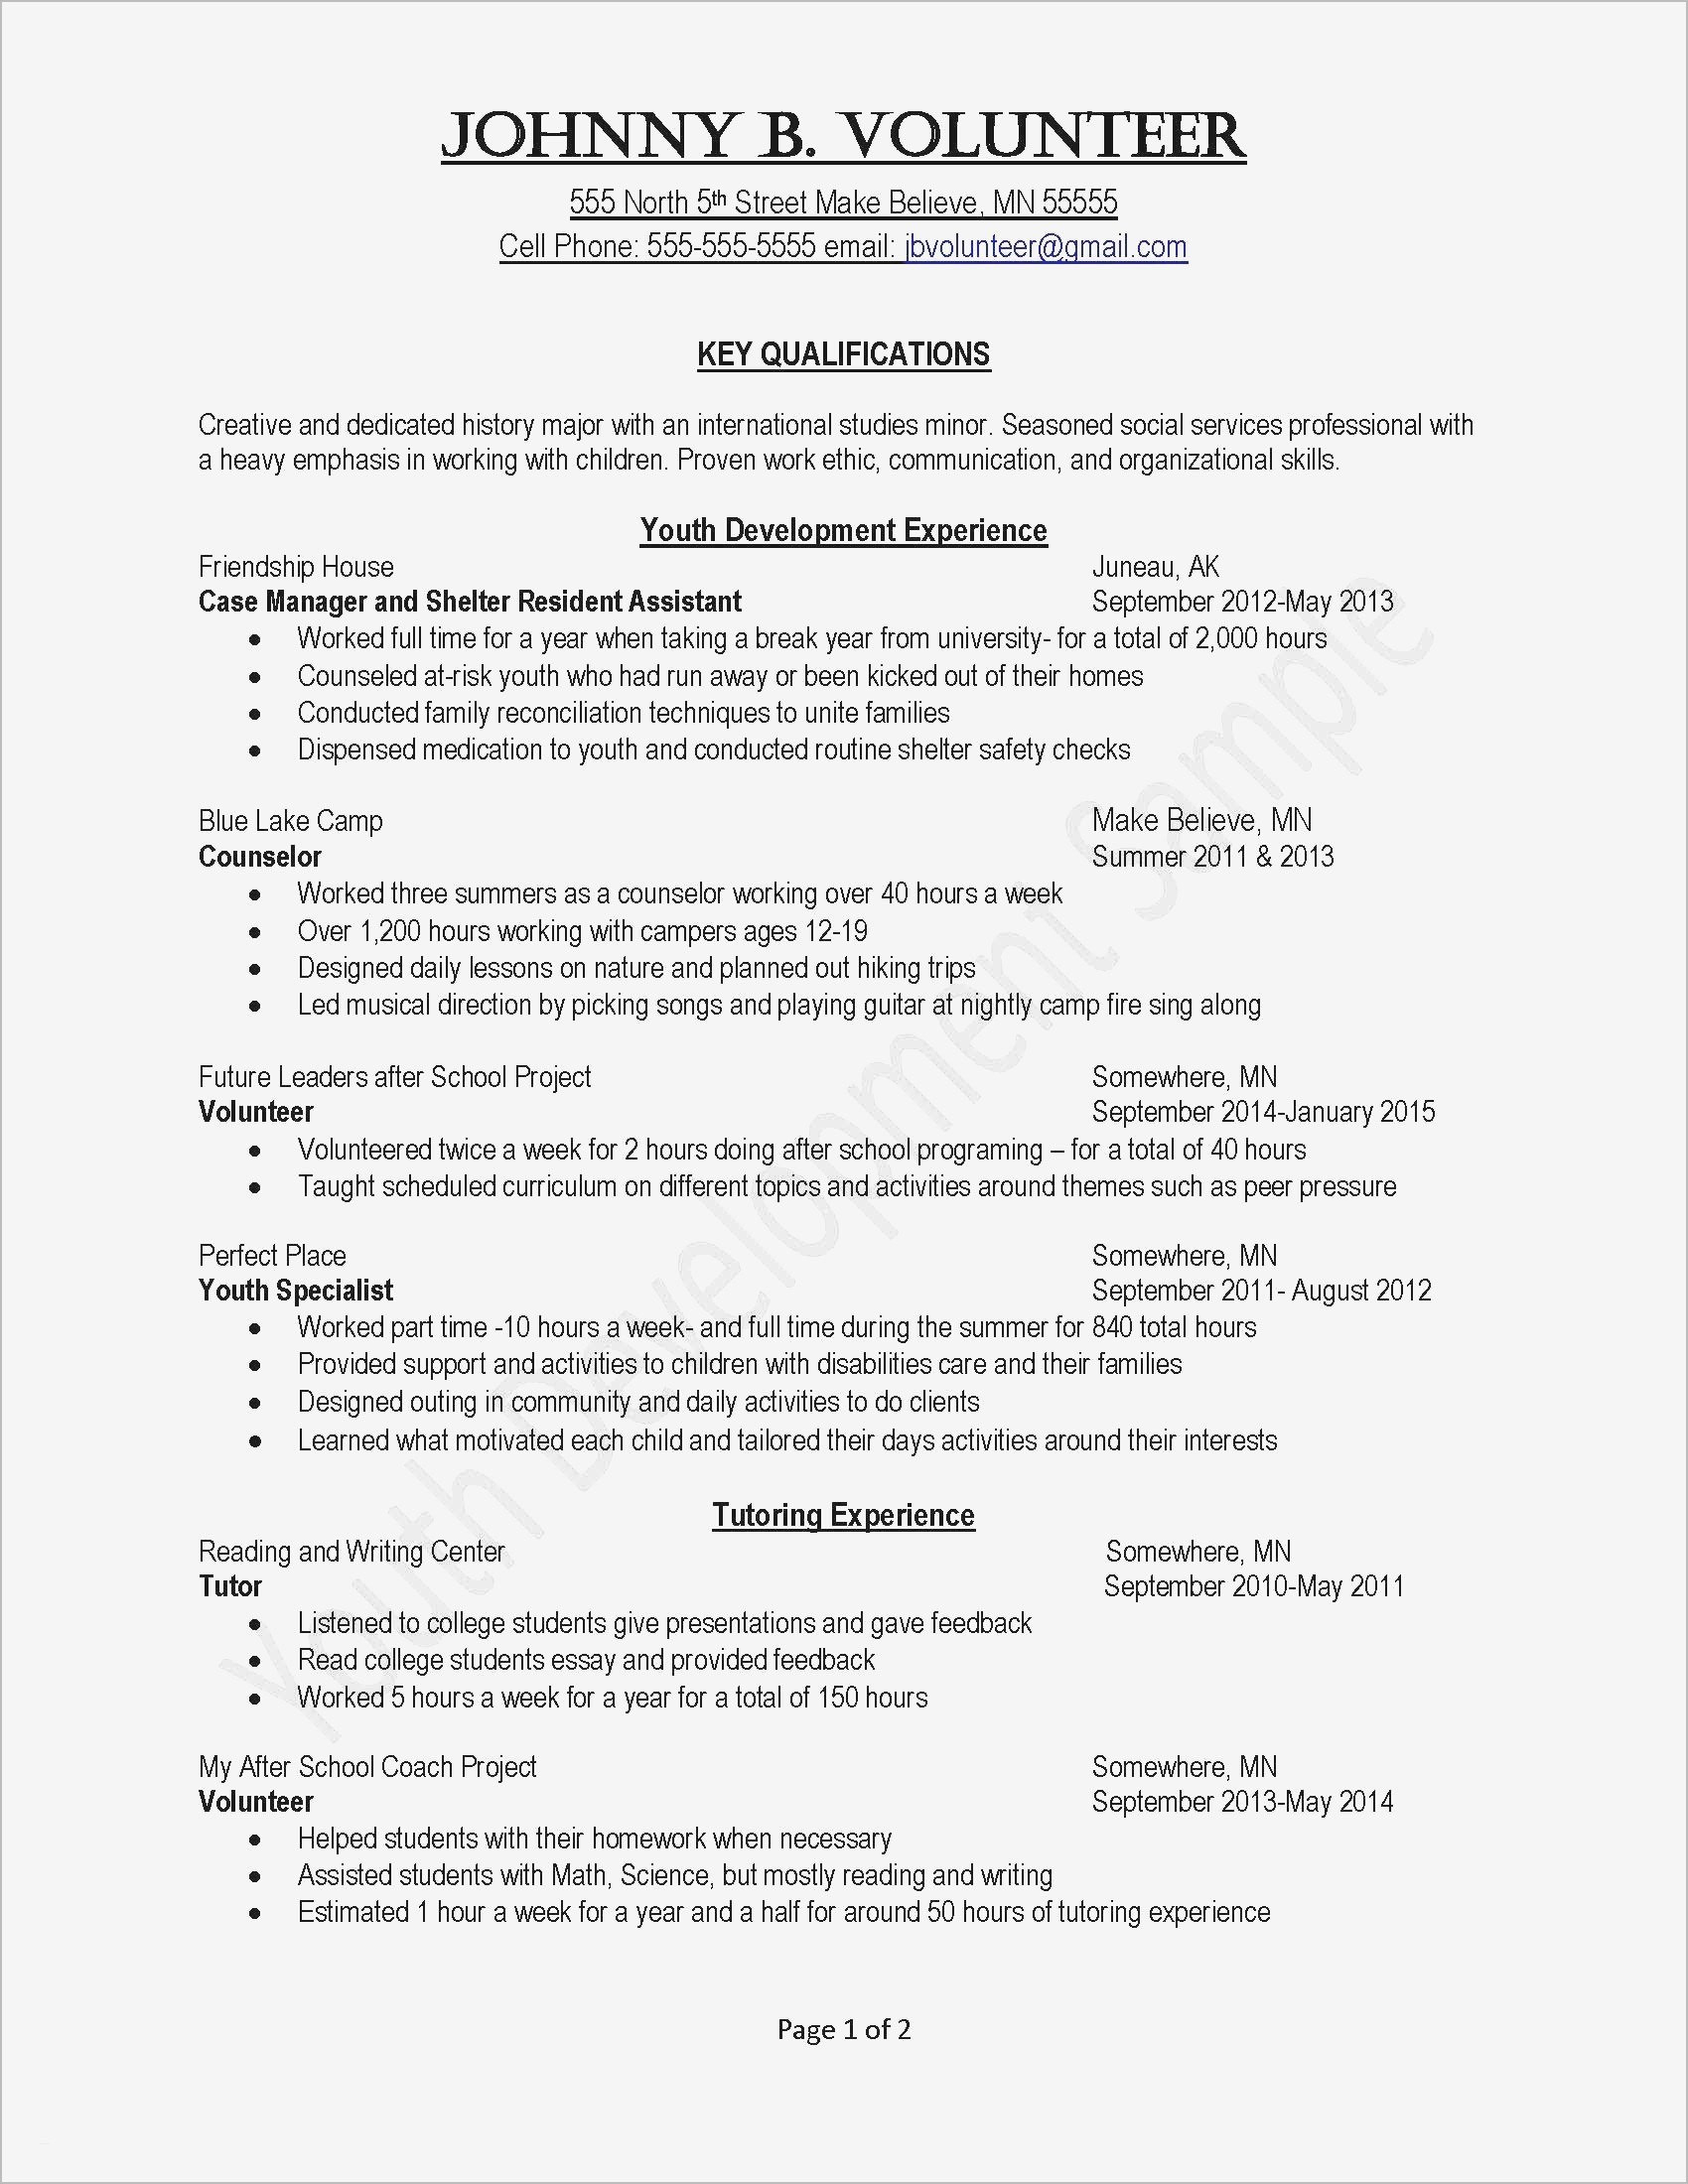 free introduction letter template example-Resume Template line Free Fresh Job Fer Letter Template Us Copy Od Consultant Cover Letter Fungram 4-p